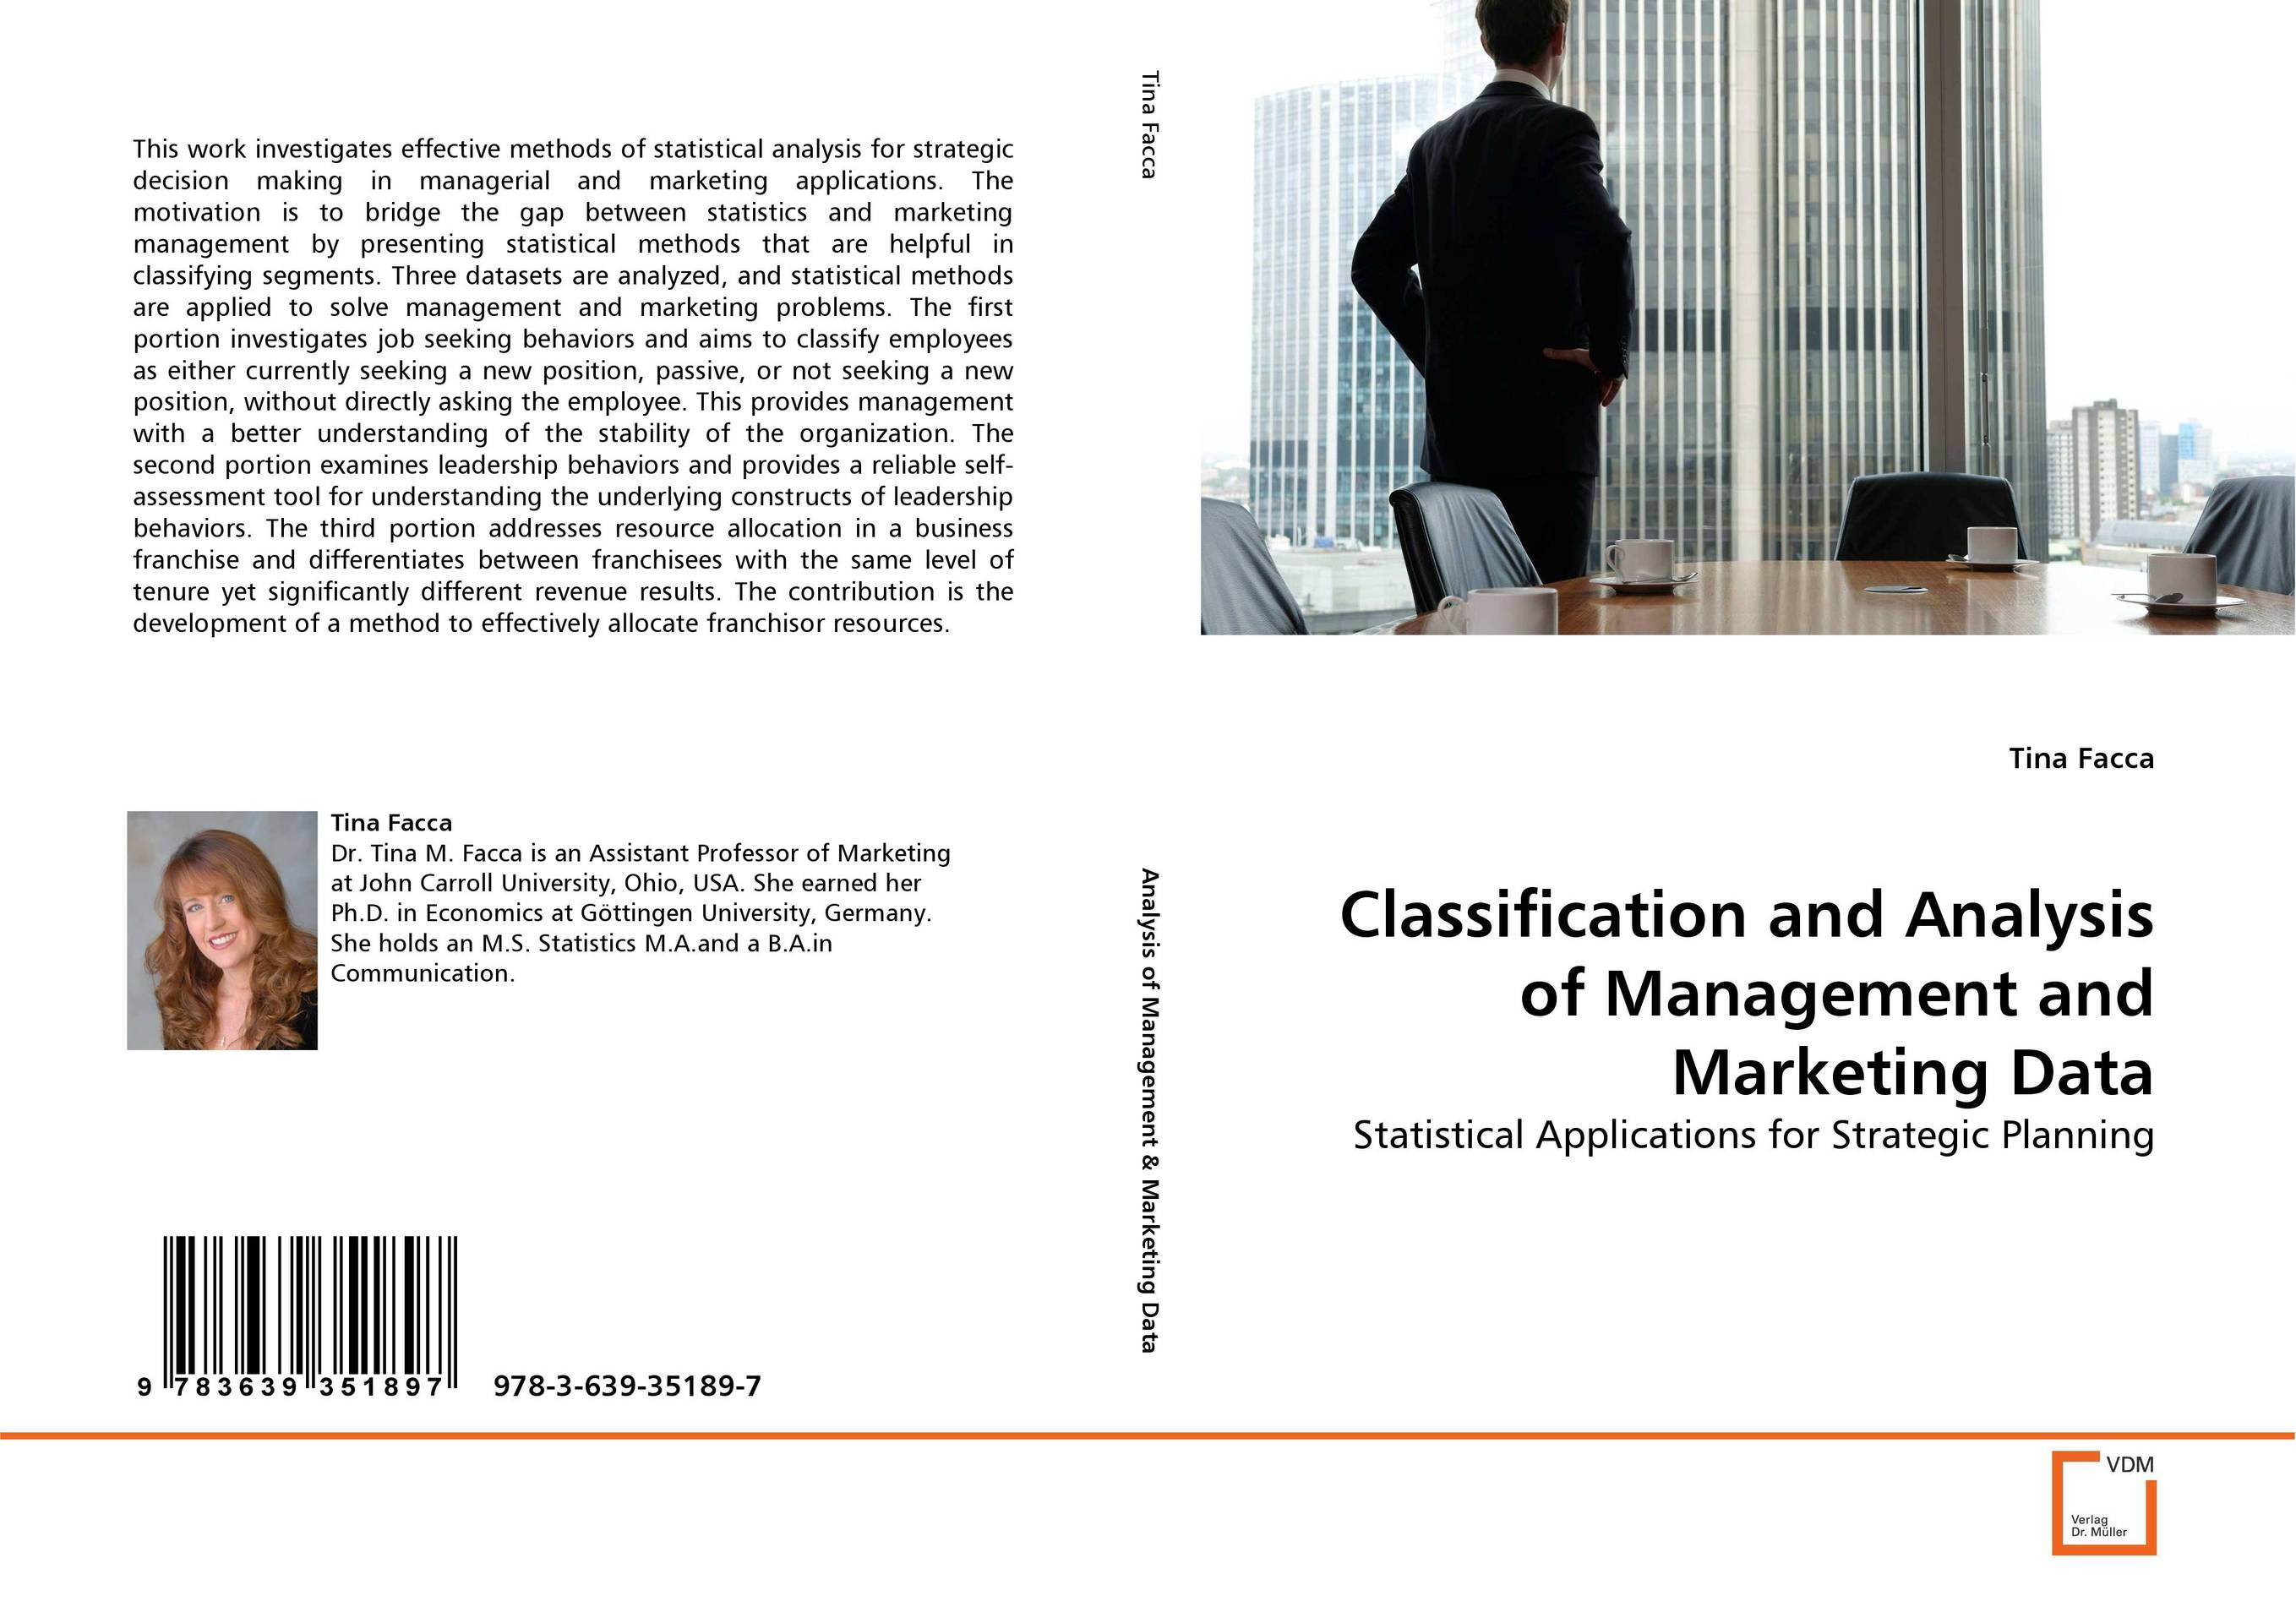 Classification and Analysis of Management and Marketing Data robert benfari c understanding and changing your management style assessments and tools for self development